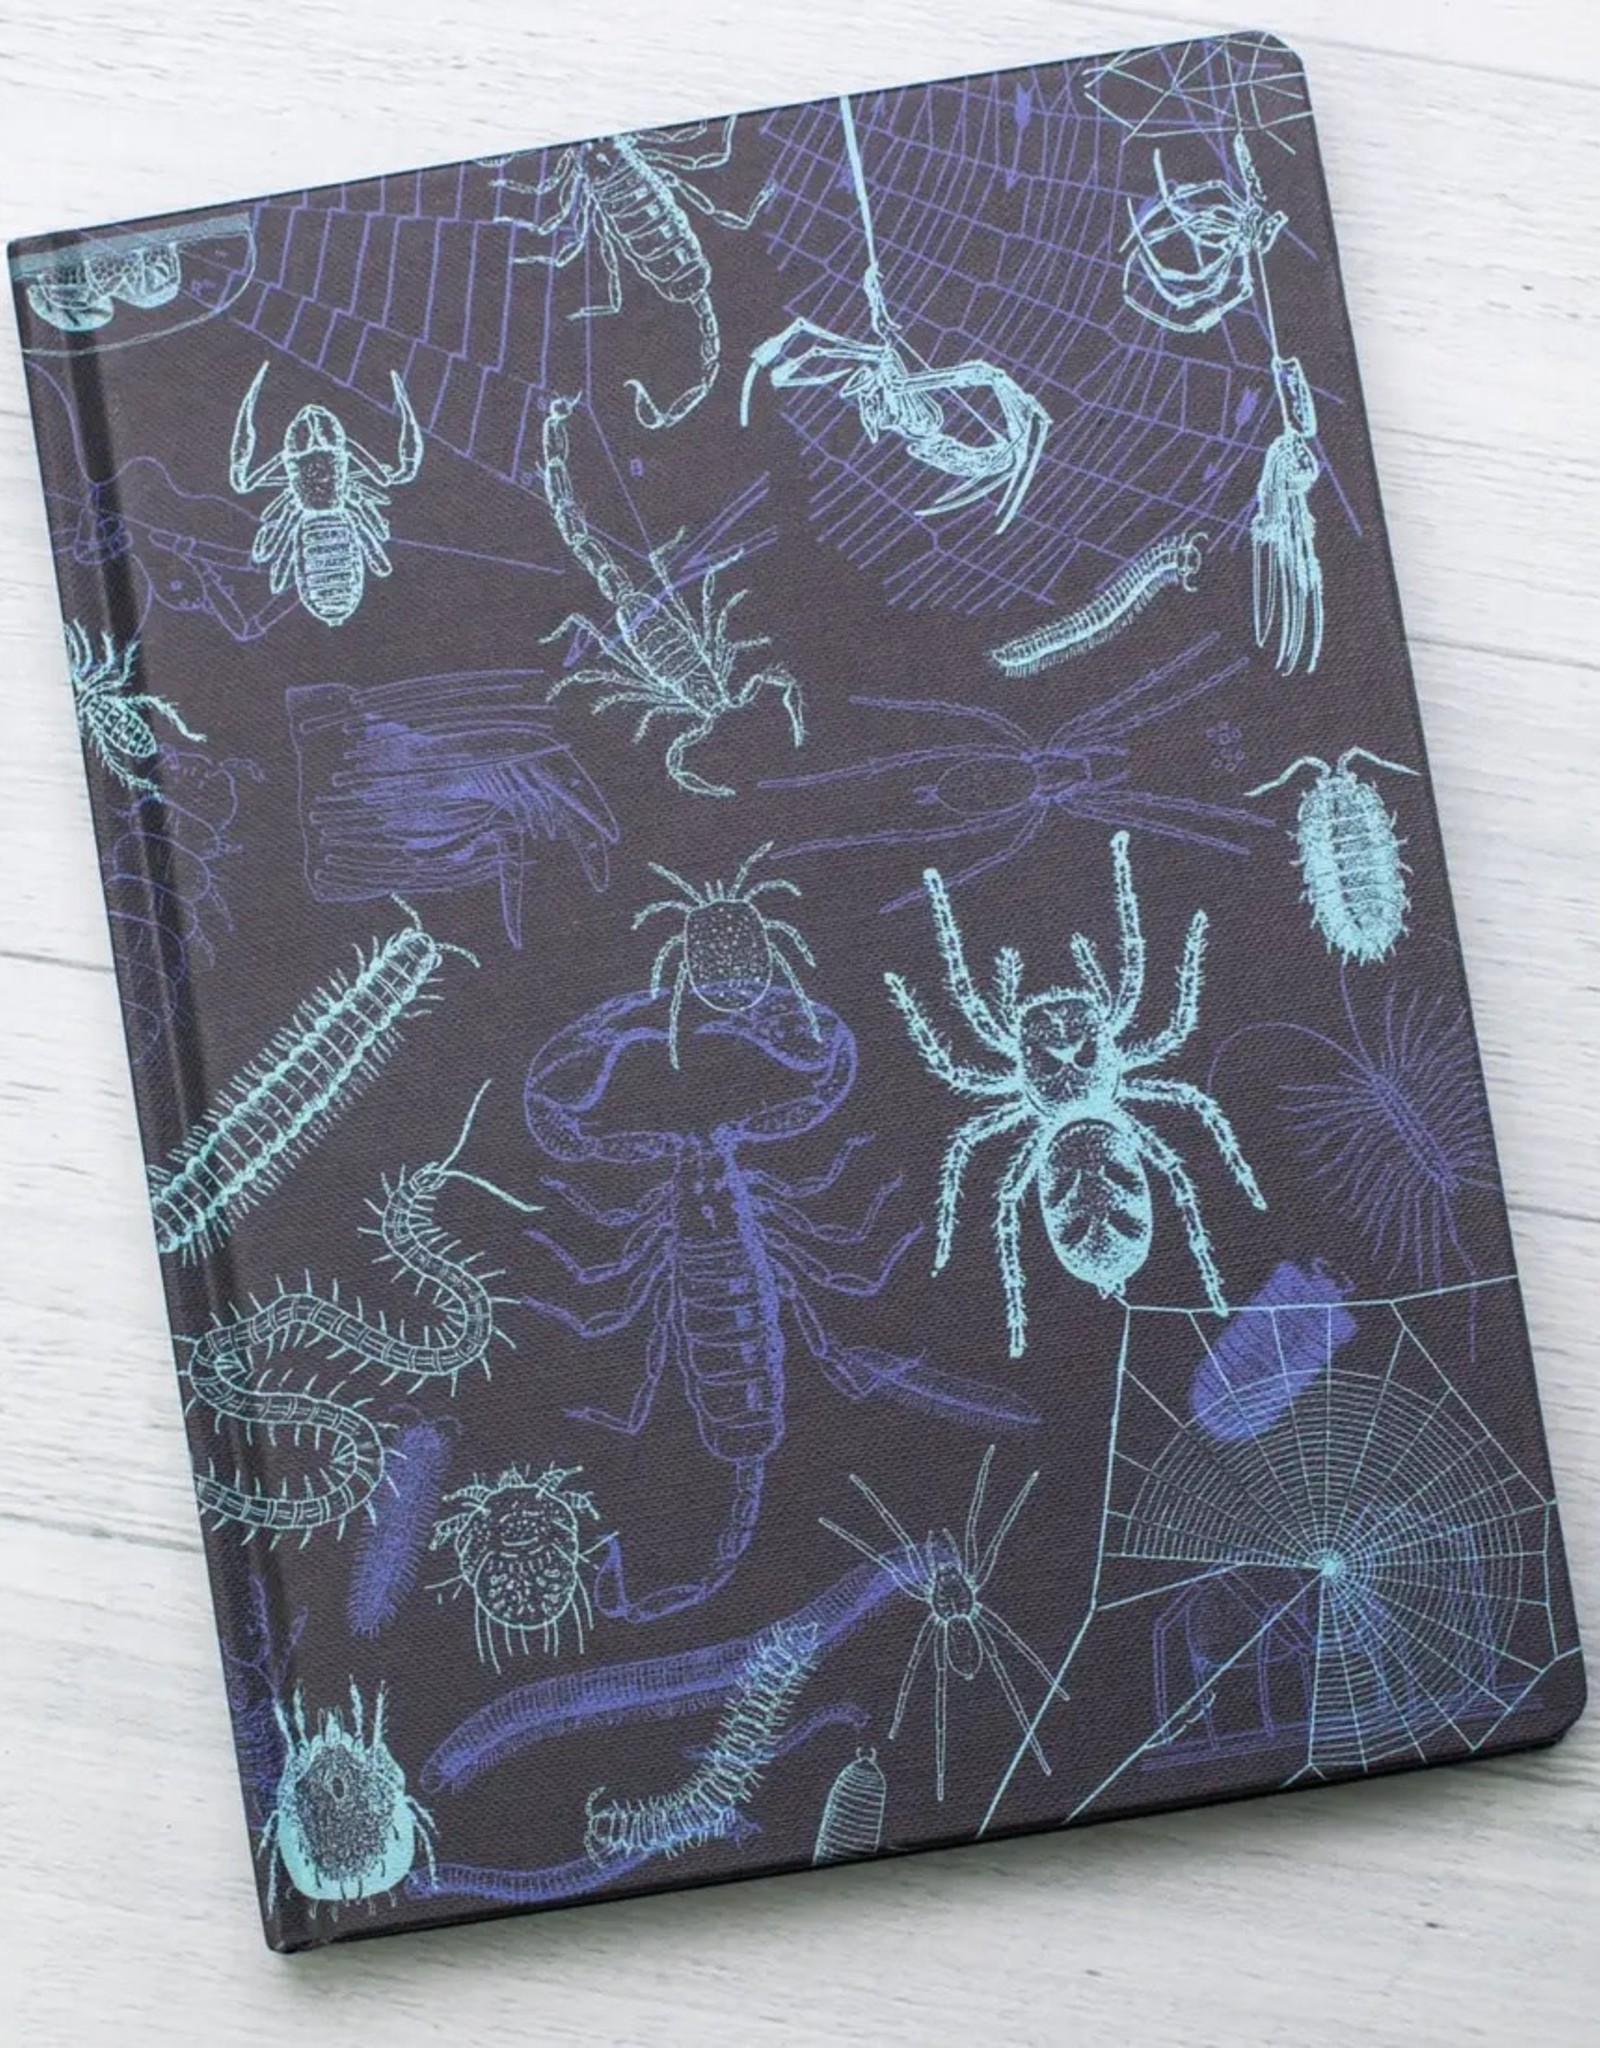 Arachnids & Myriapods with Grid Hardcover Notebook